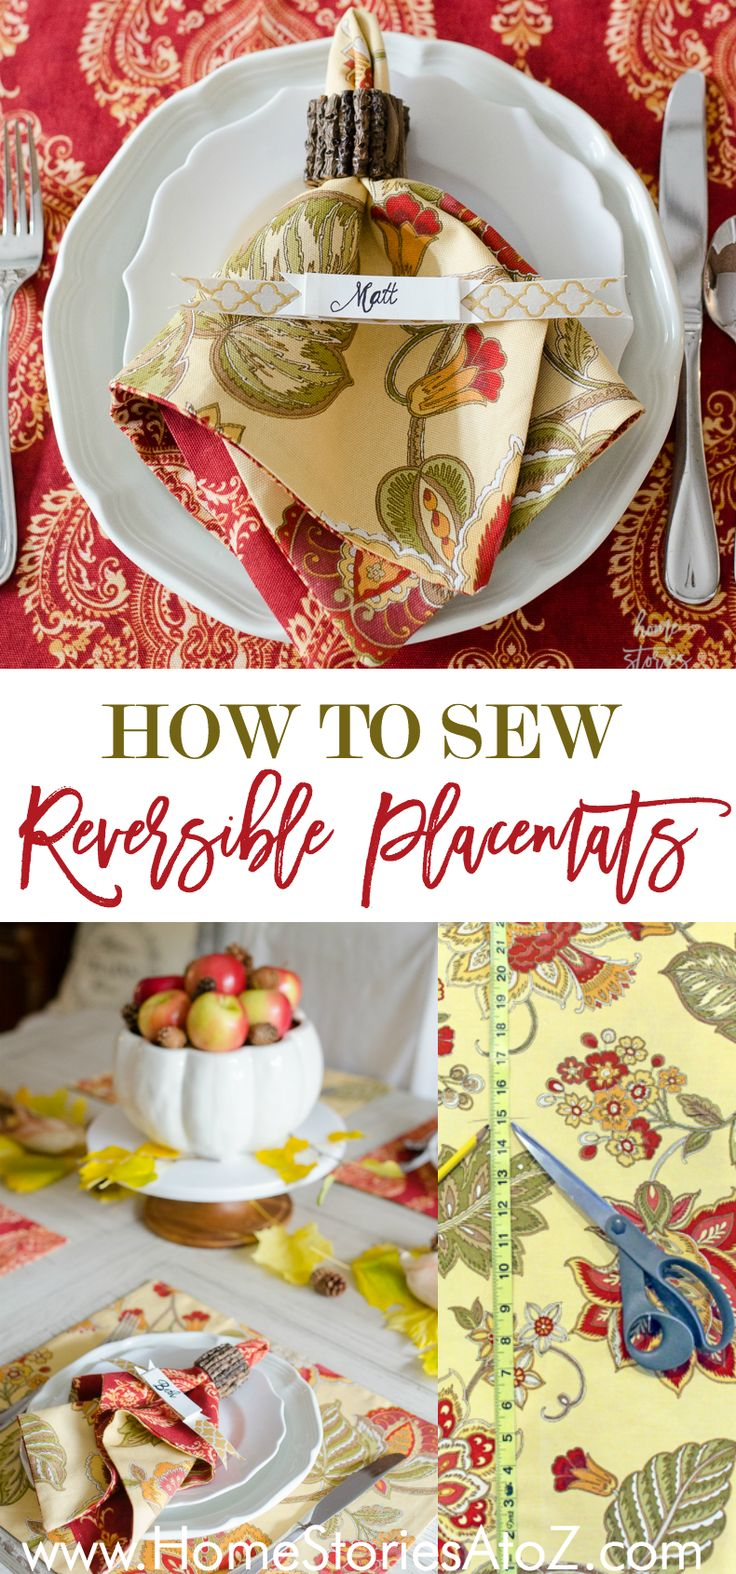 This easy placemat tutorial shows step-by-step how to sew reversible placemats. Great for holiday table or as a special DIY gift!  ad Waverly Inspirations